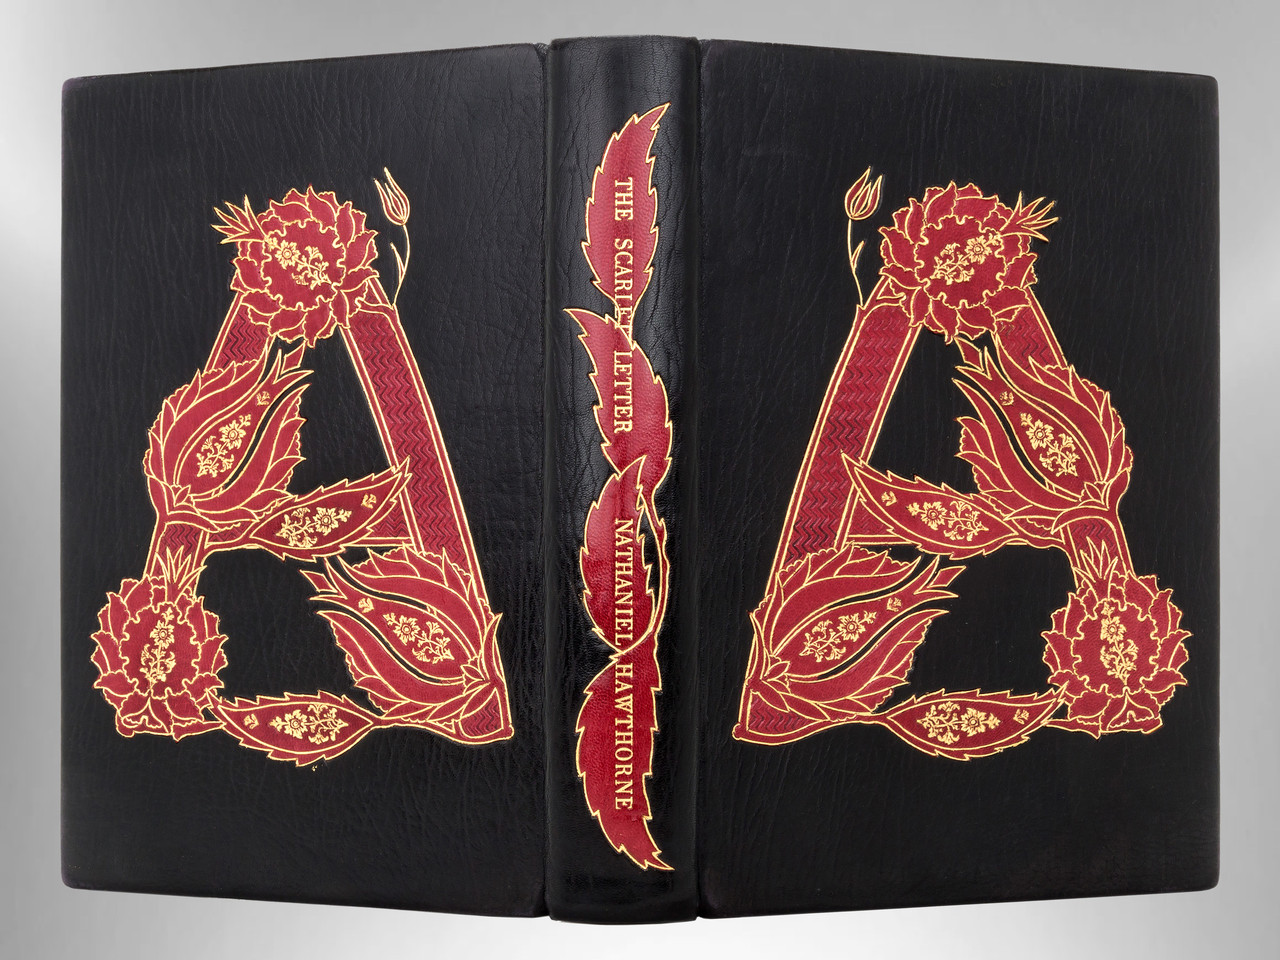 The Scarlet Letter by Nathaniel Hawthorne, Unique Binding by Jamie Kamph